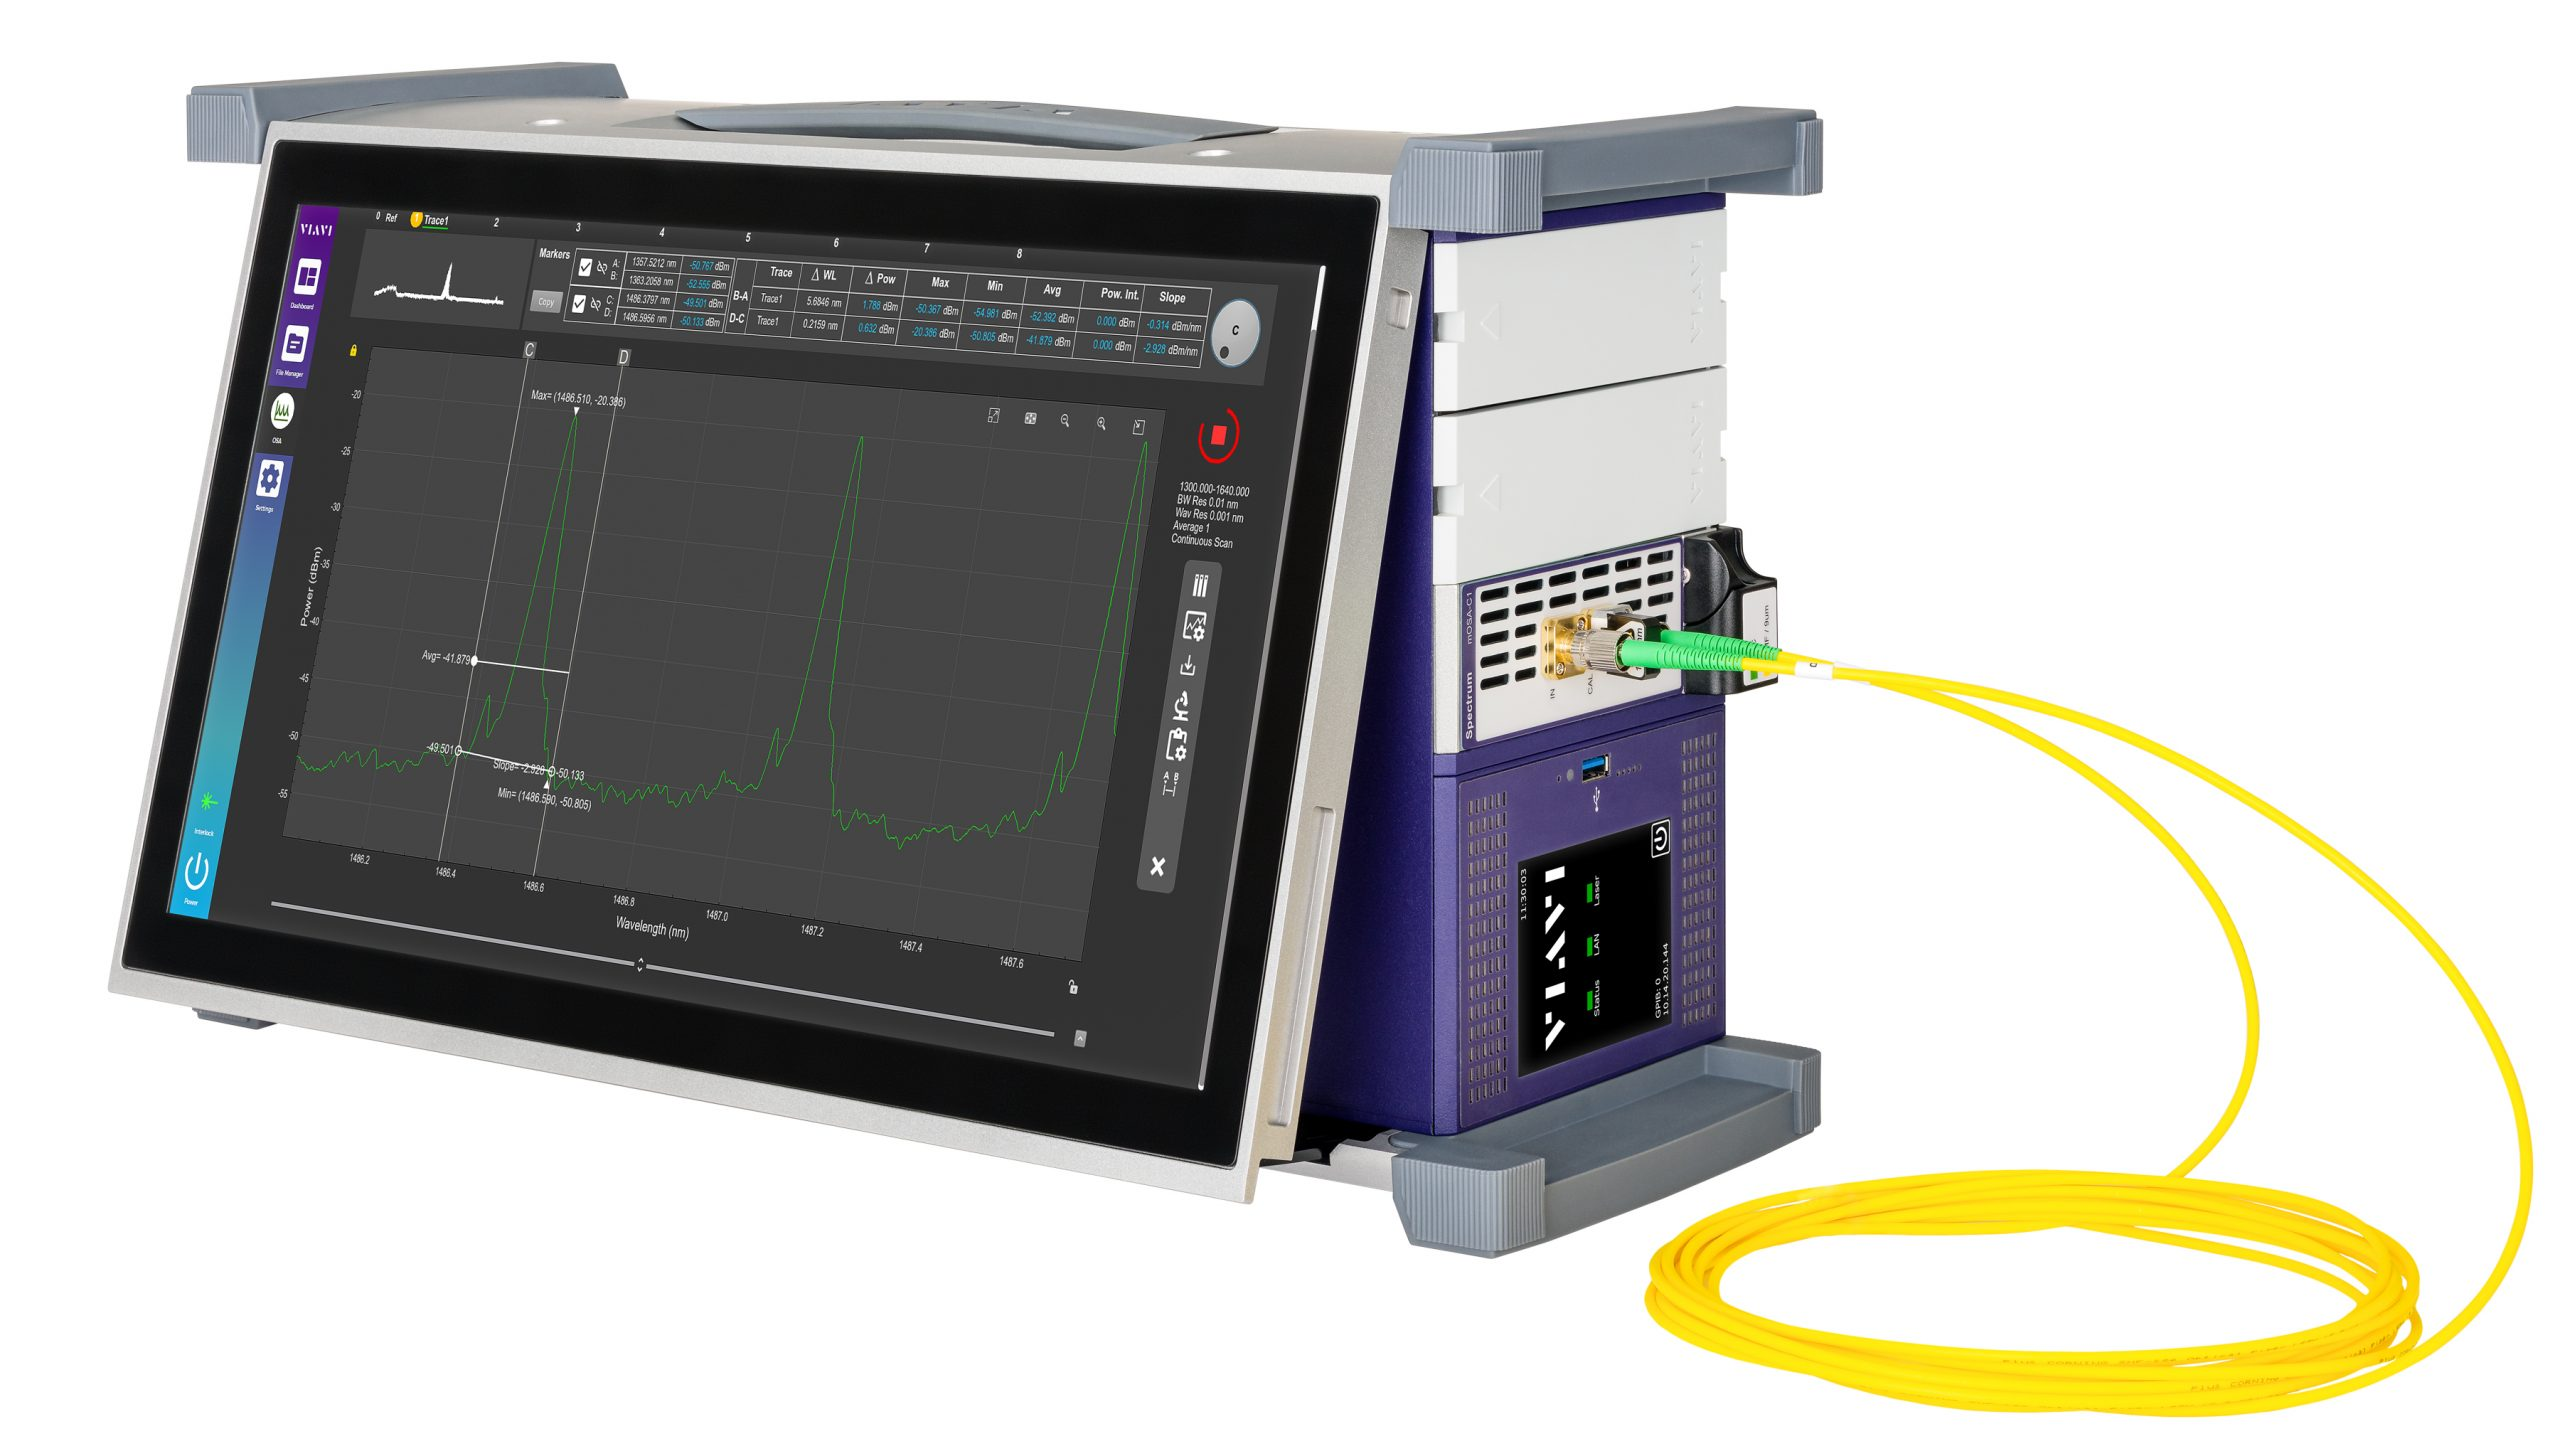 VIAVI Reveals mOSA Optical Spectrum Analysis Module, Enhancing Trusted Test Portfolio for Lab and Manufacturing